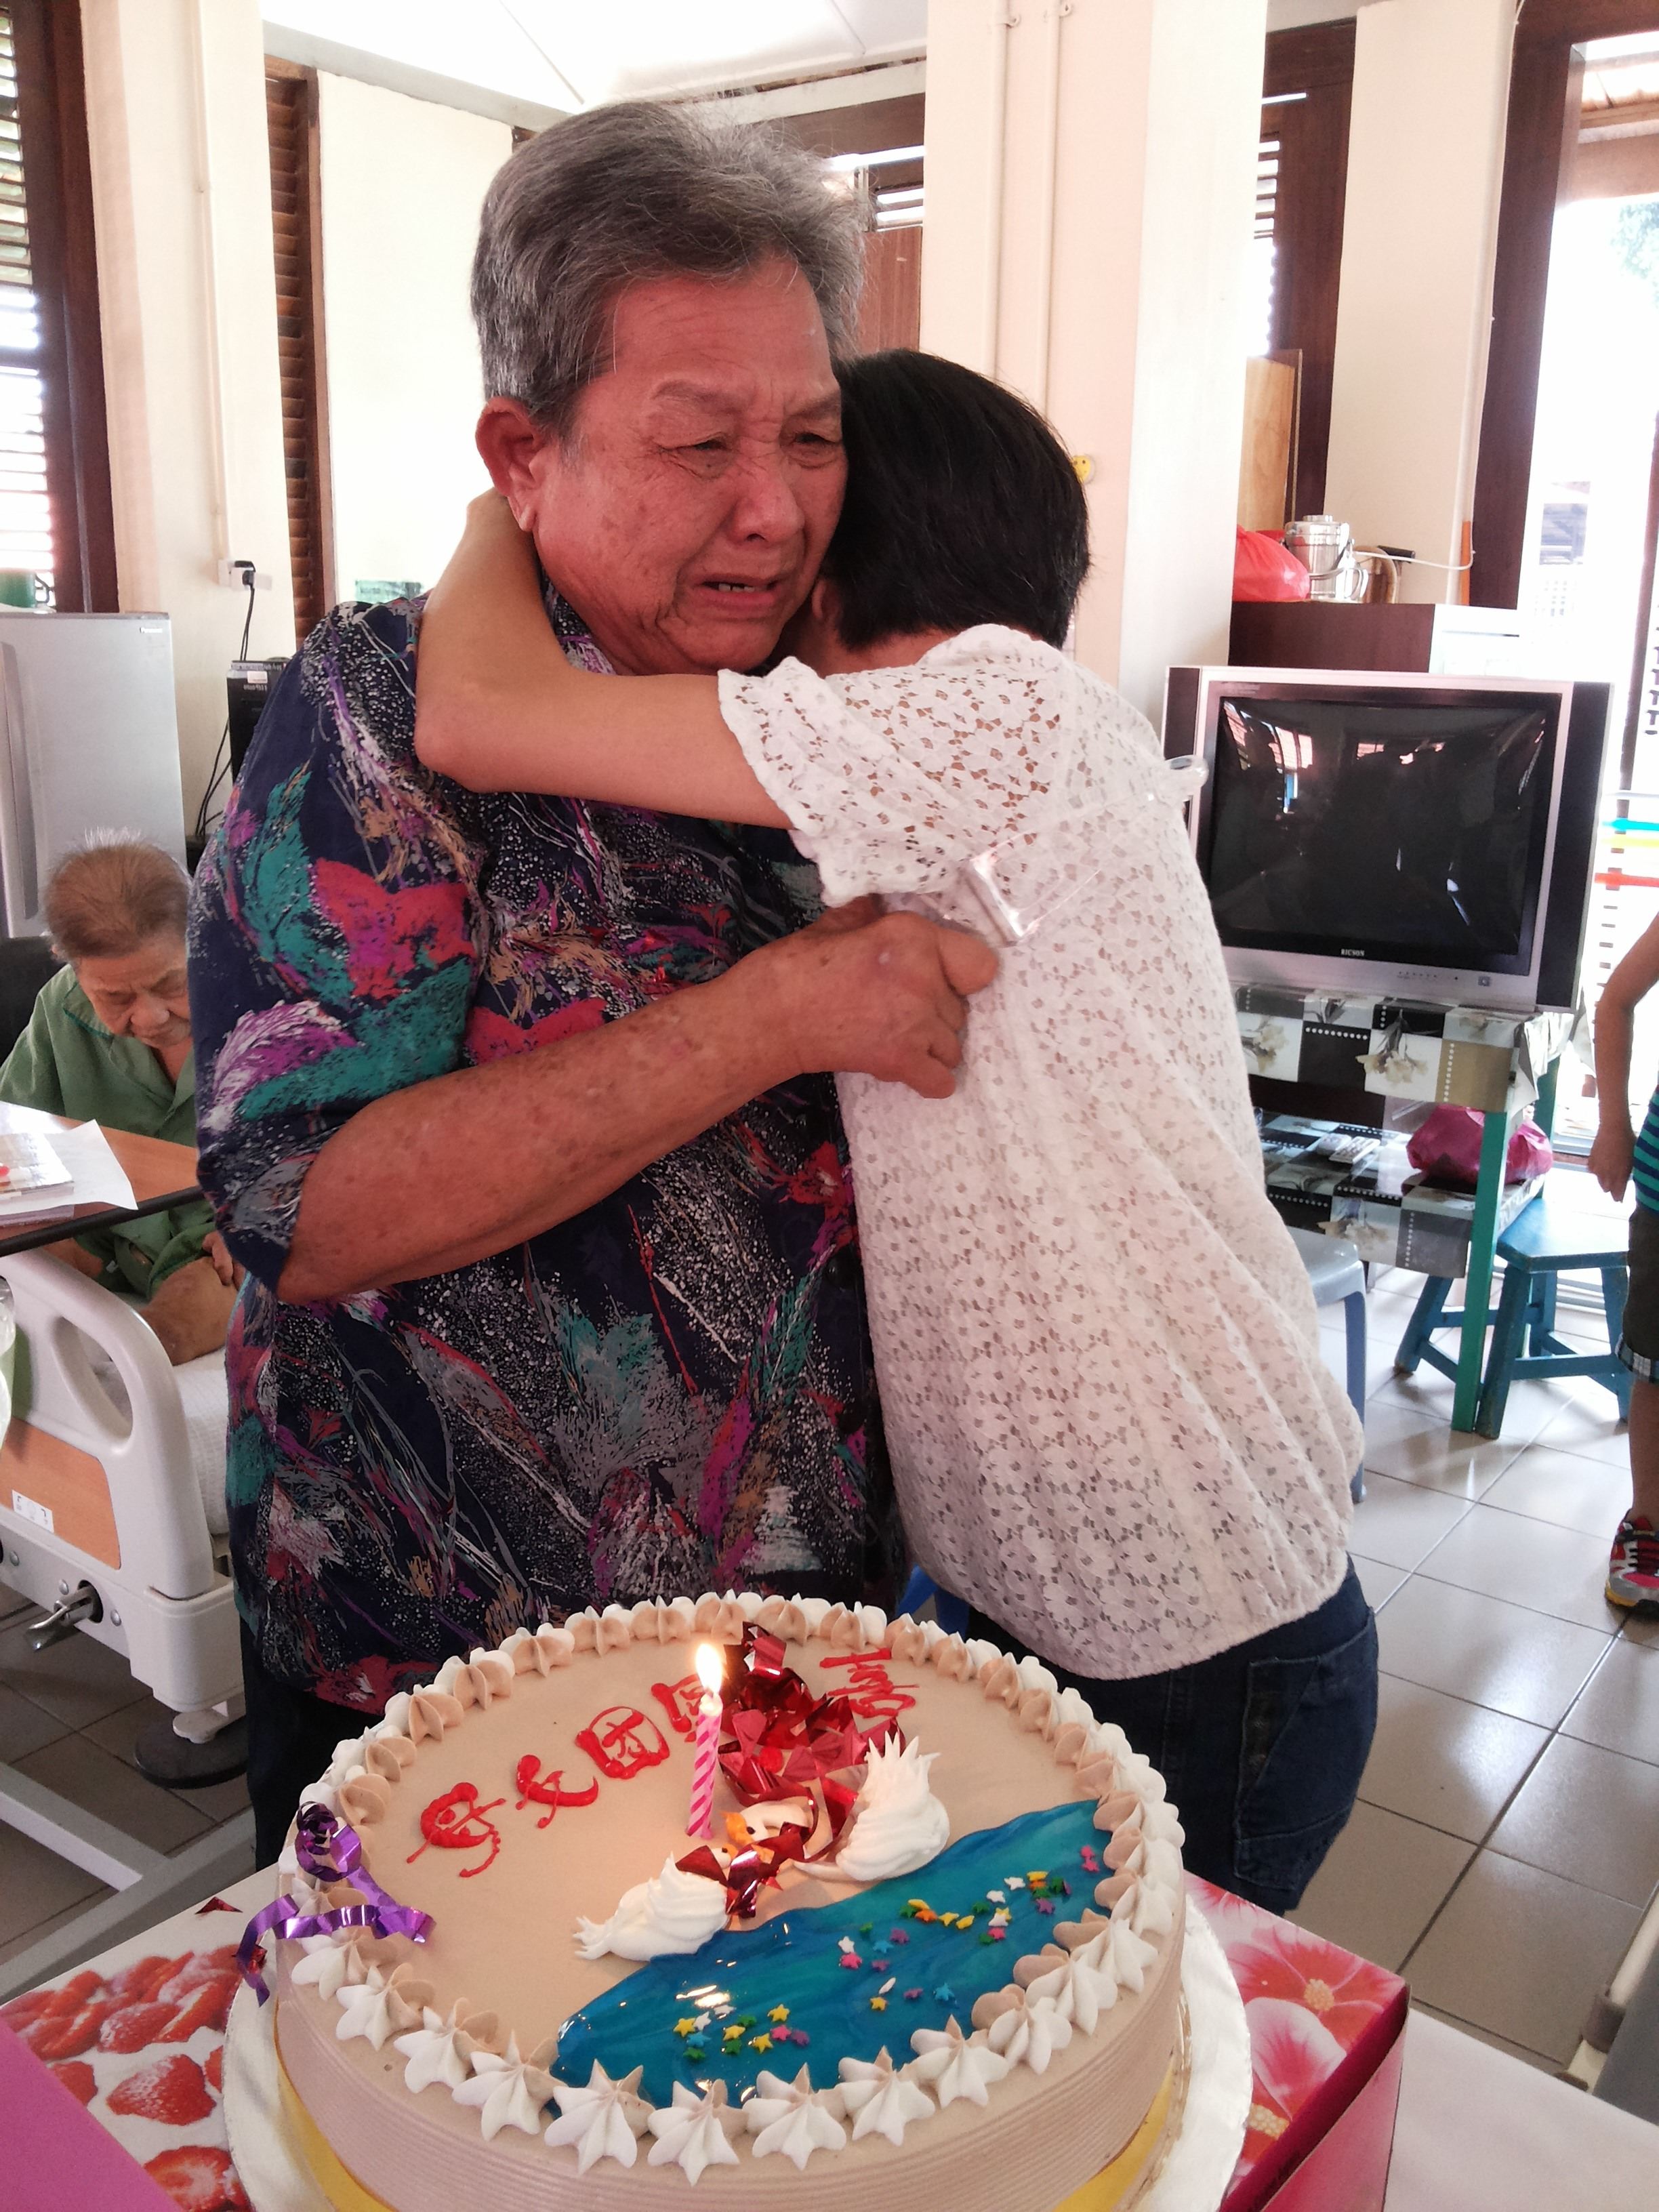 Touching moment of a mother who finally met her separated daughter. (photo by Douglas Ho)